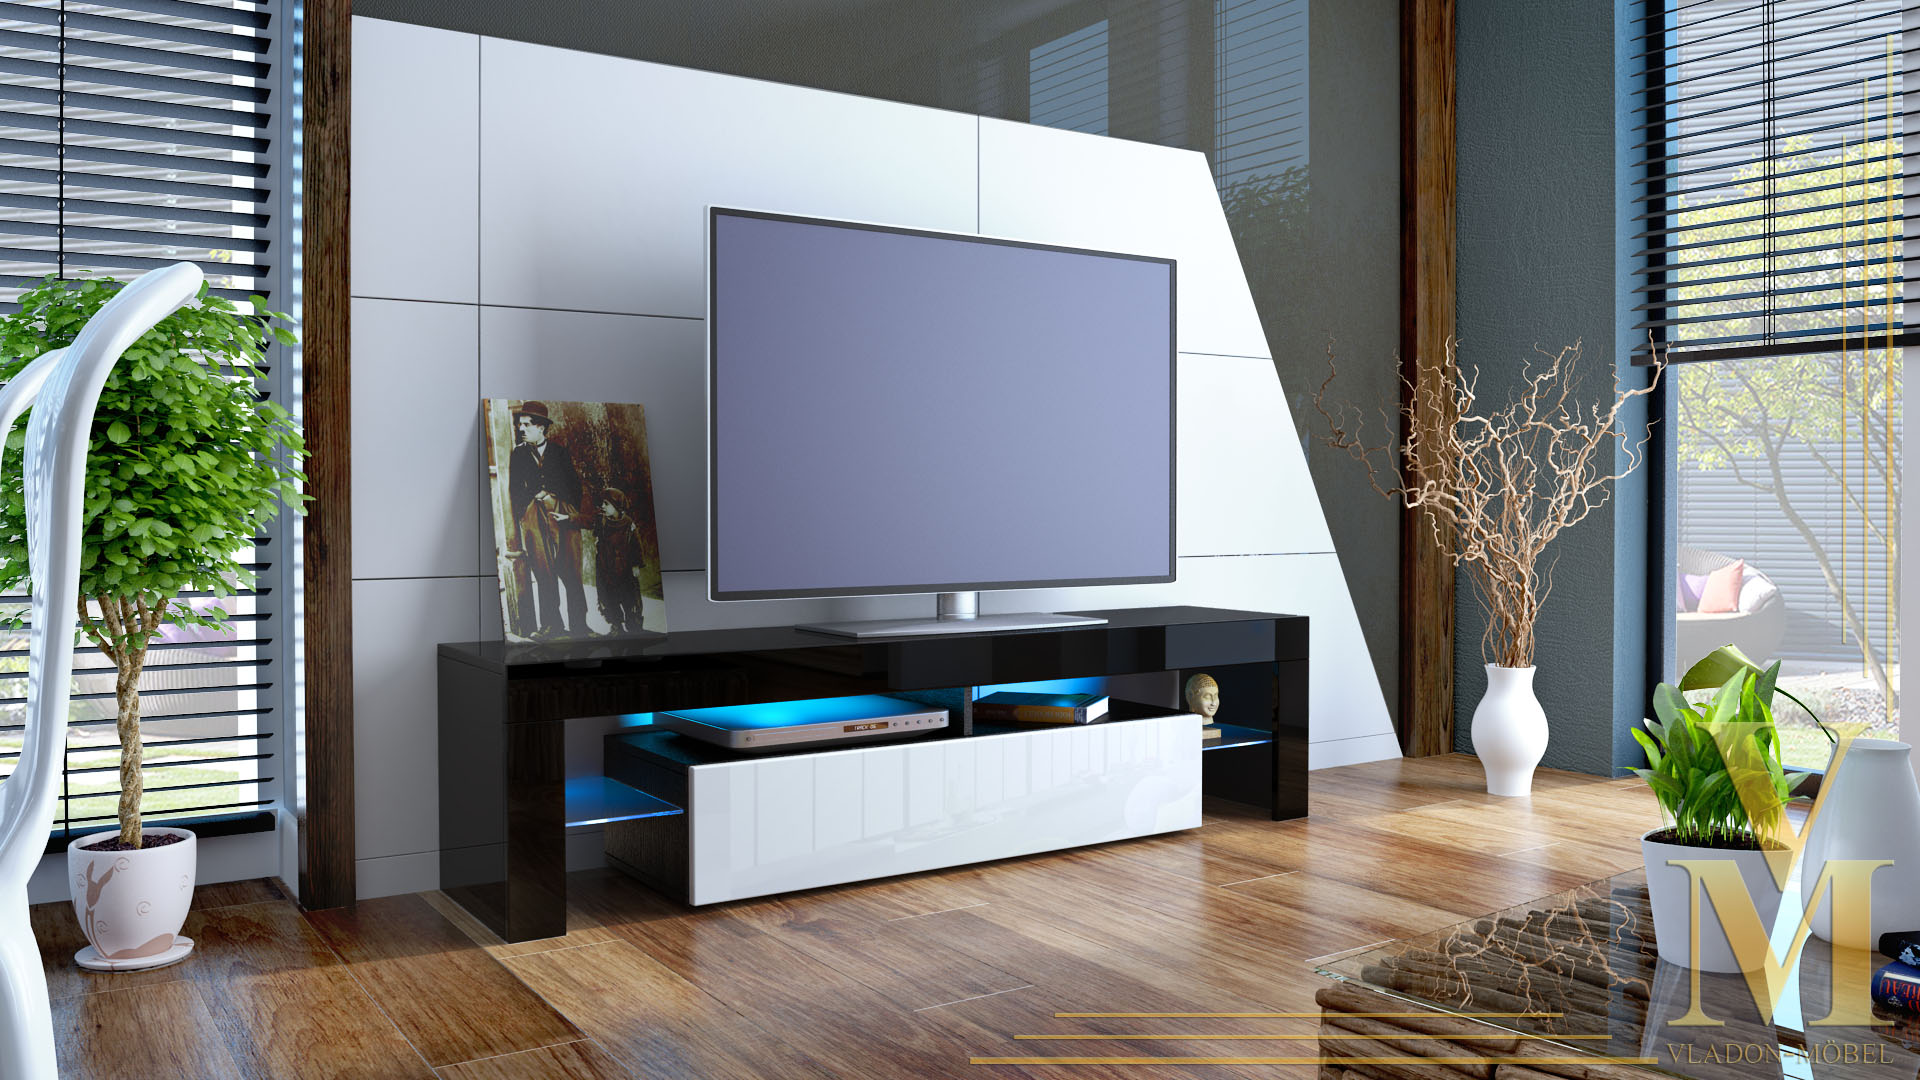 lowboard tv board kommode tisch rack m bel lima schwarz hochglanz naturt ne ebay. Black Bedroom Furniture Sets. Home Design Ideas